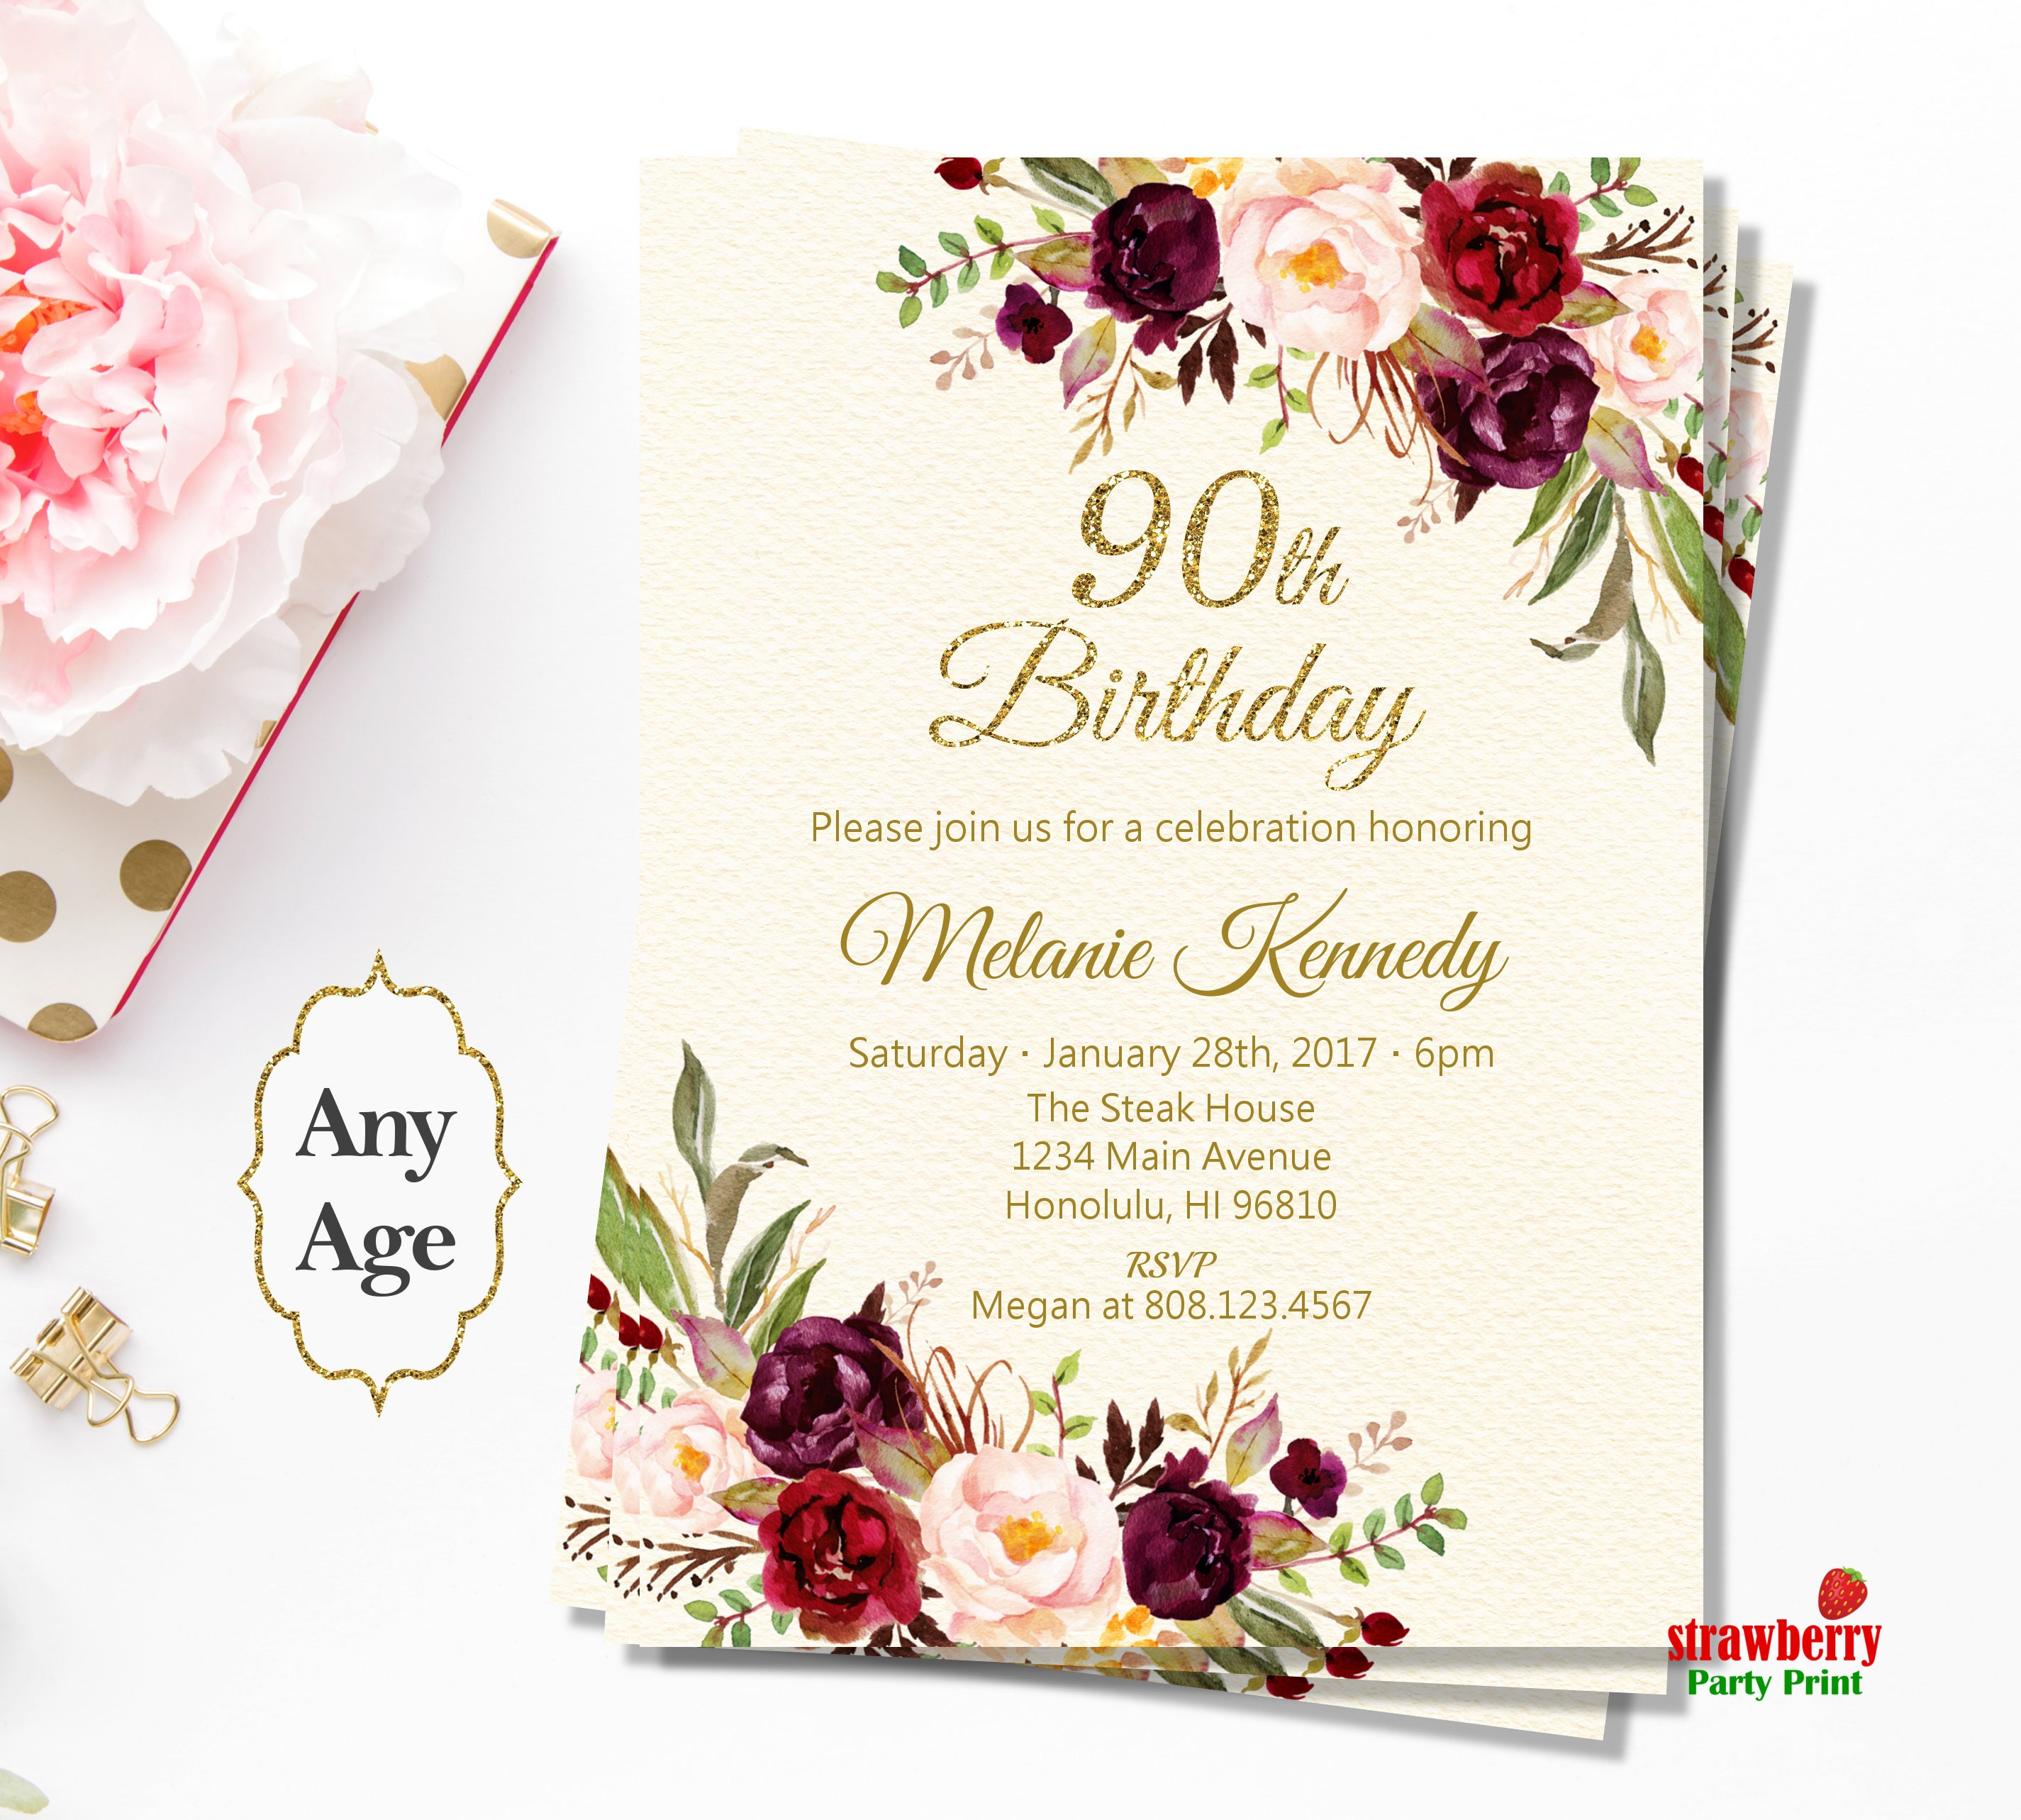 90th birthday invitations for women red floral birthday invitation 90th birthday invitations for women red floral birthday invitation boho birthday invitations gold filmwisefo